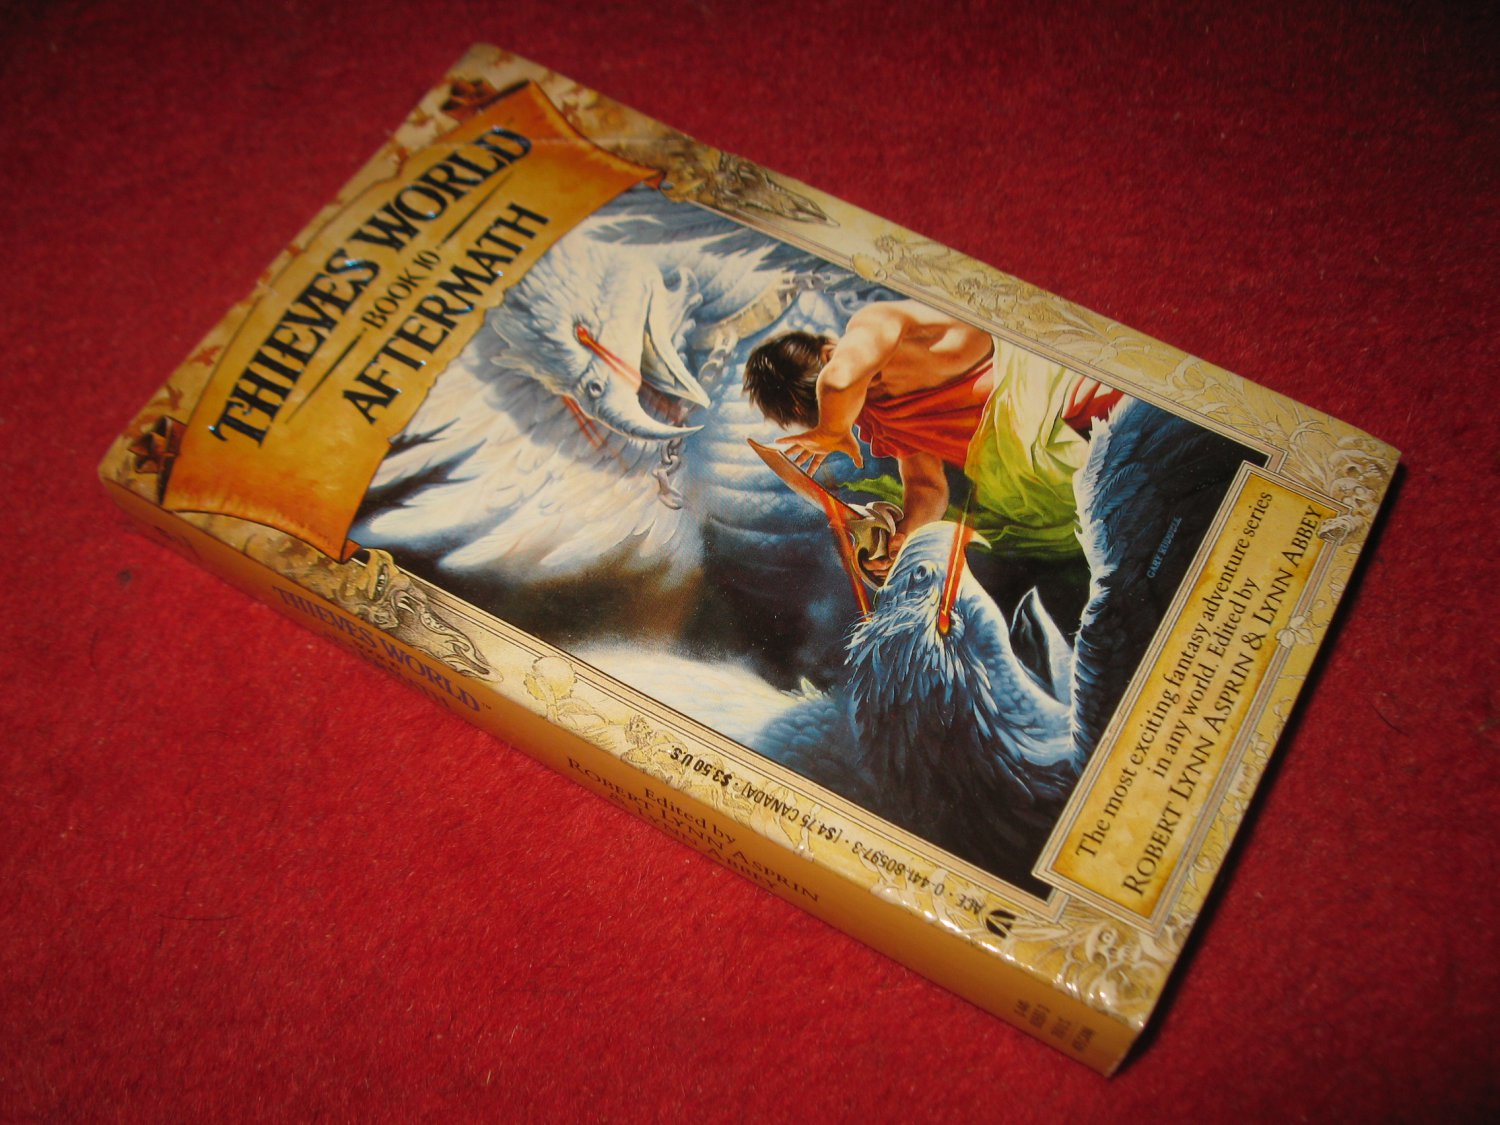 1987 Thieves World #10: Aftermath - Ace books - paperback